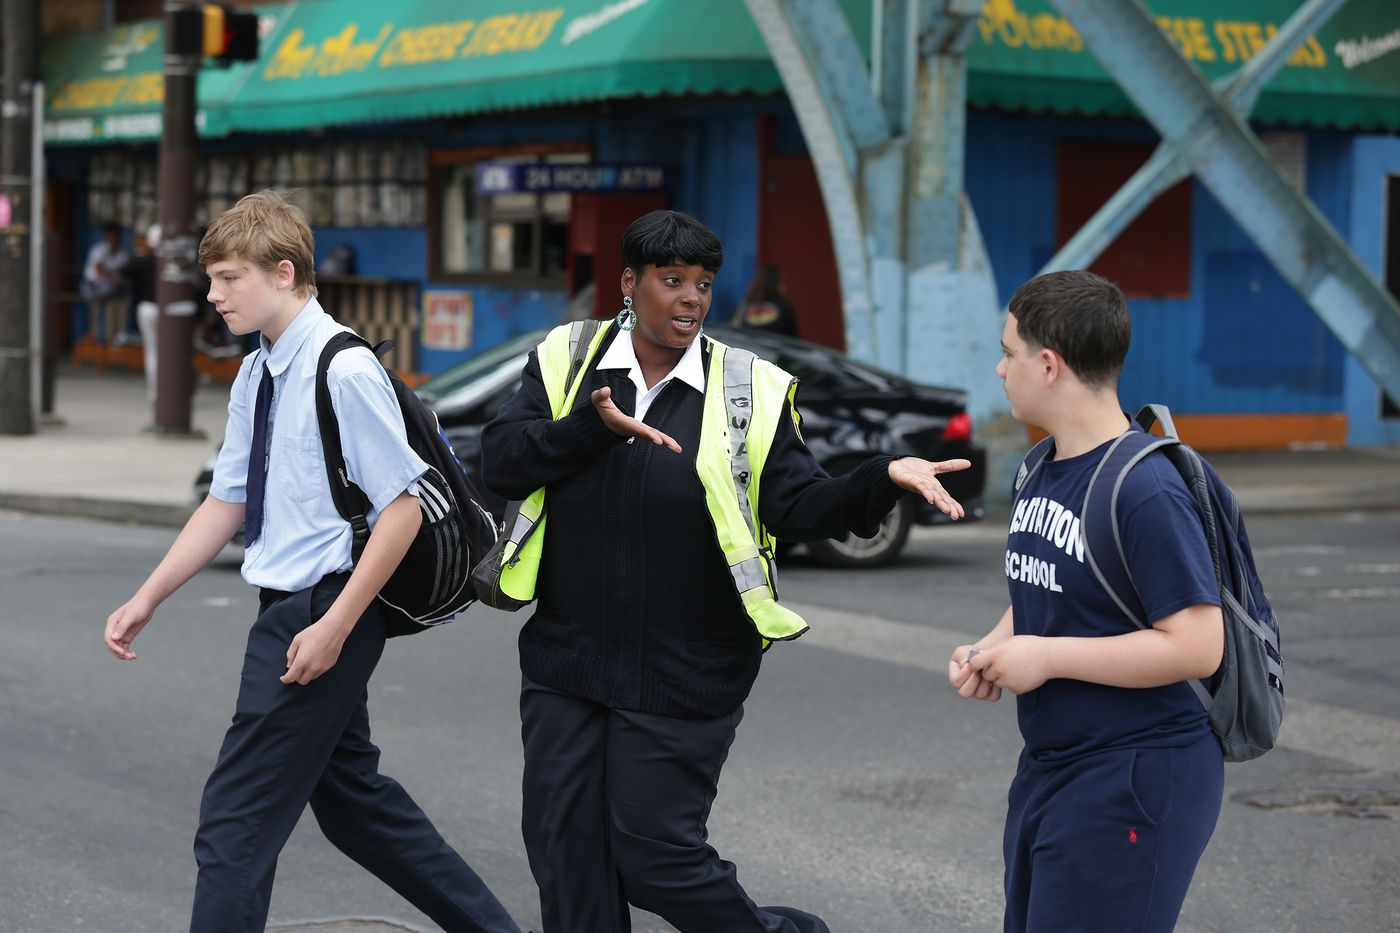 Your friendly neighborhood crossing guards could make your corners even safer — if only the city would let them | Opinion